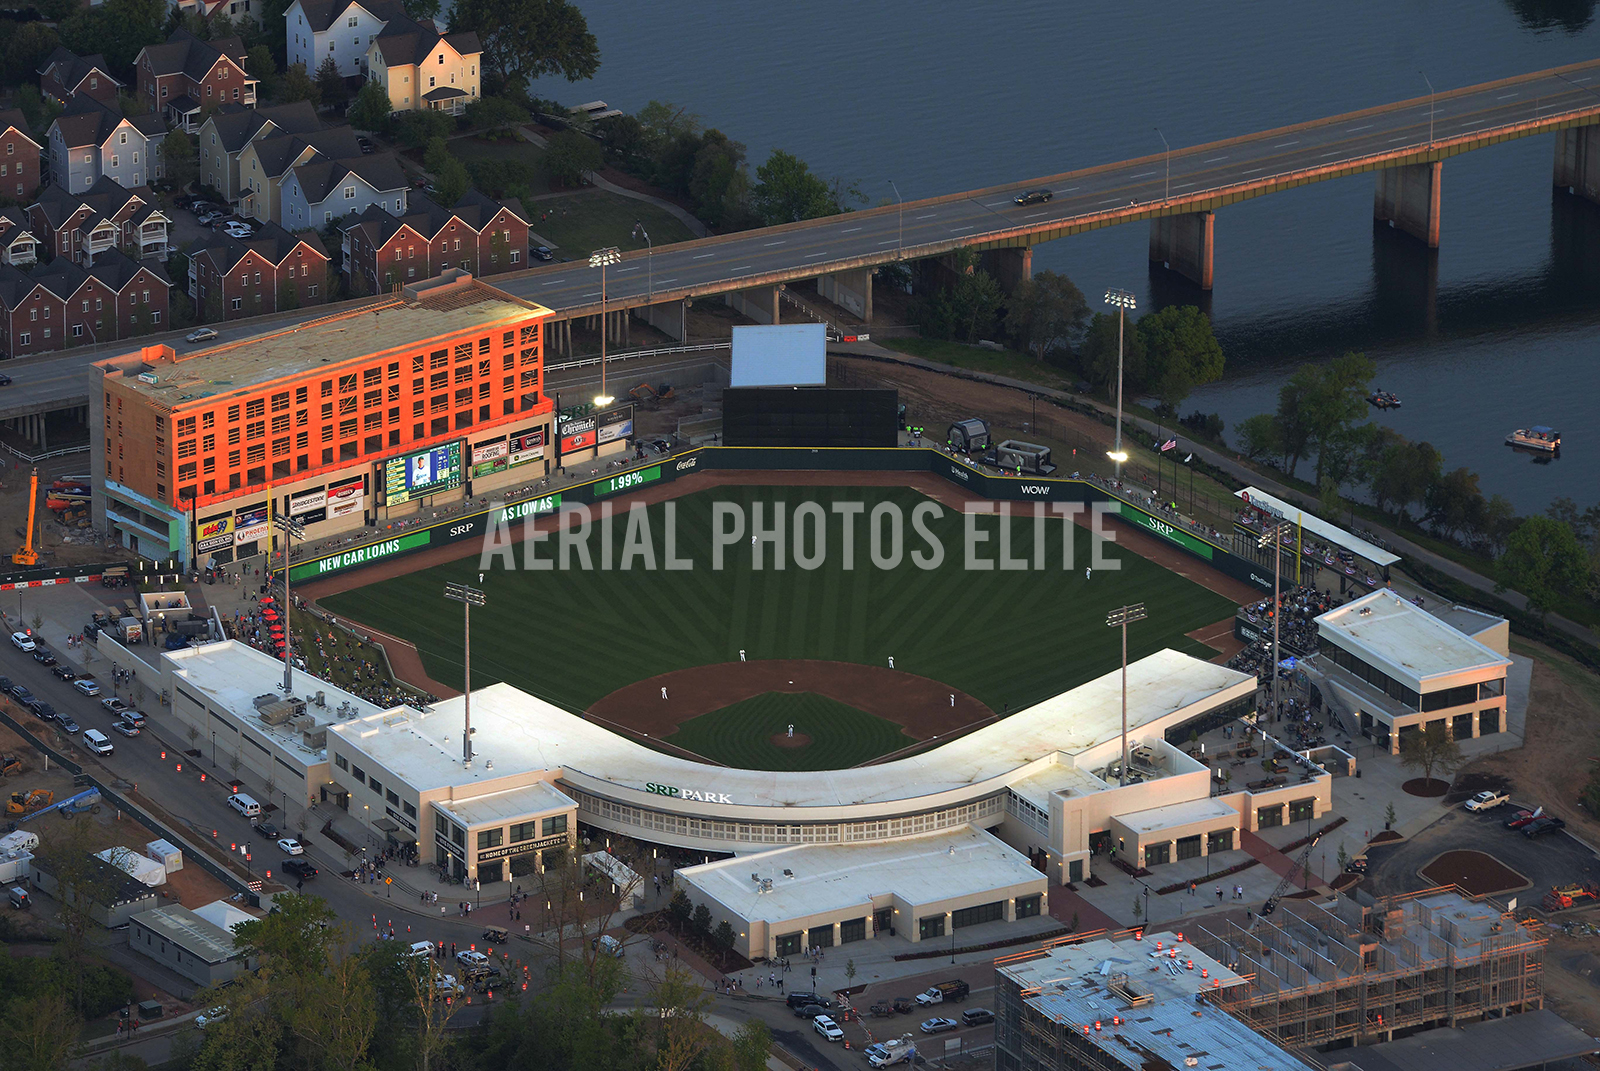 SRP Park Night Opening Game Green Jackets North Augusta SC | Aerial Photos Elite